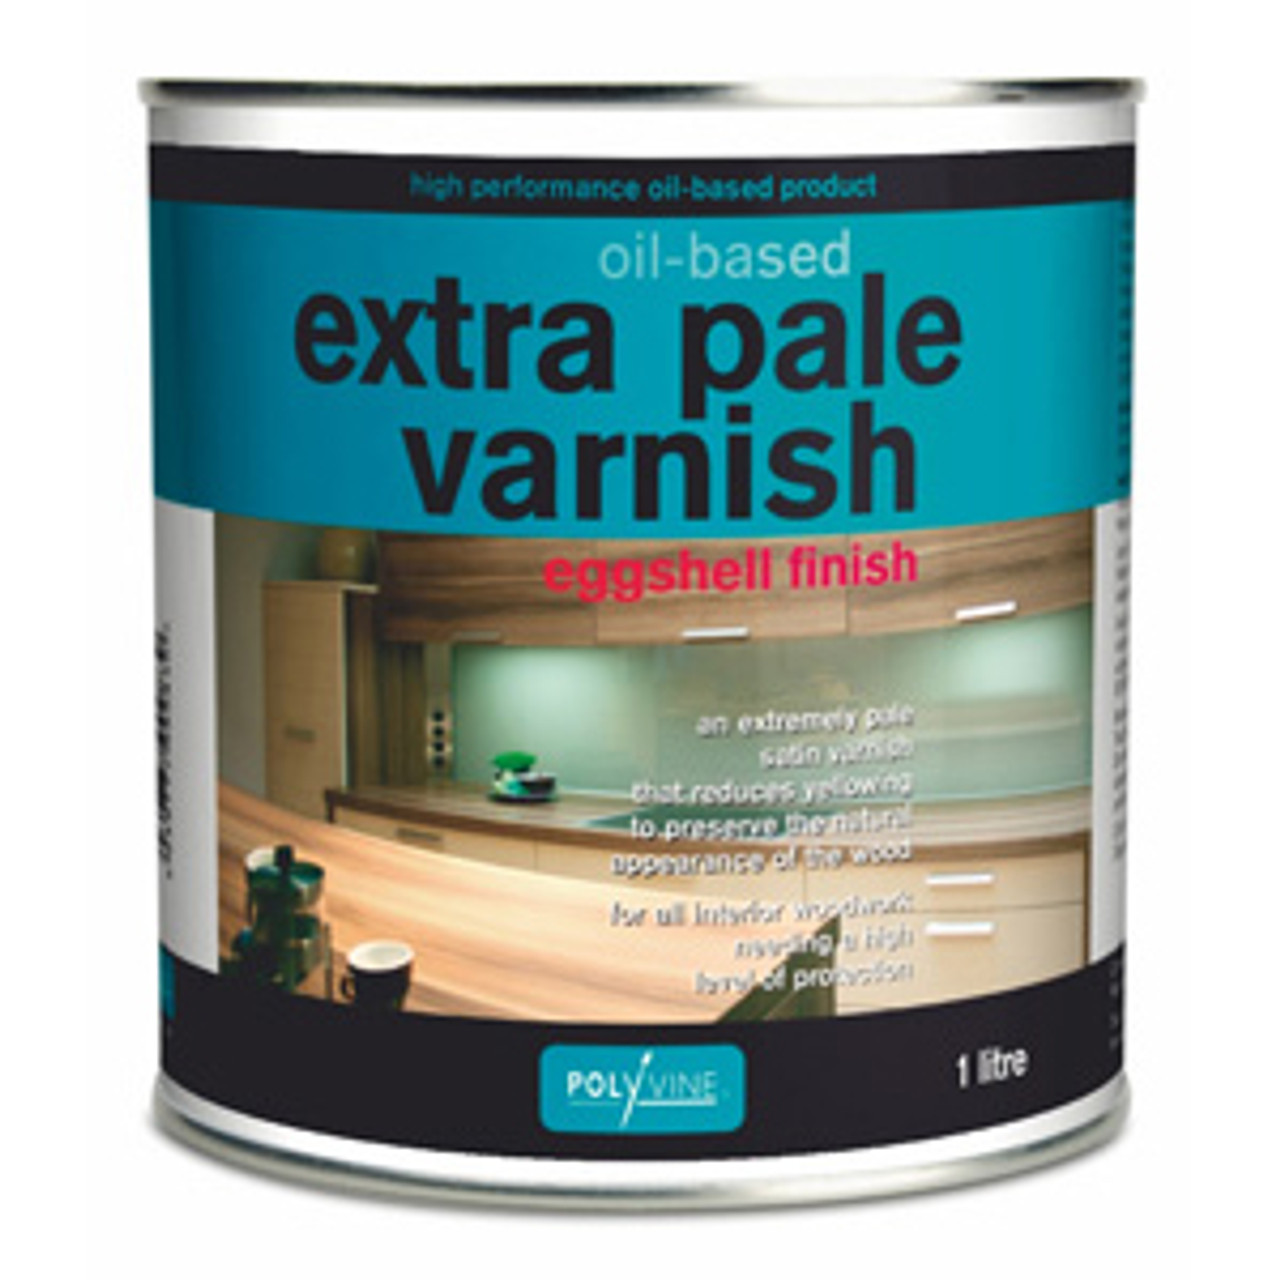 Polyvine Oil-Based Extra Pale Varnish